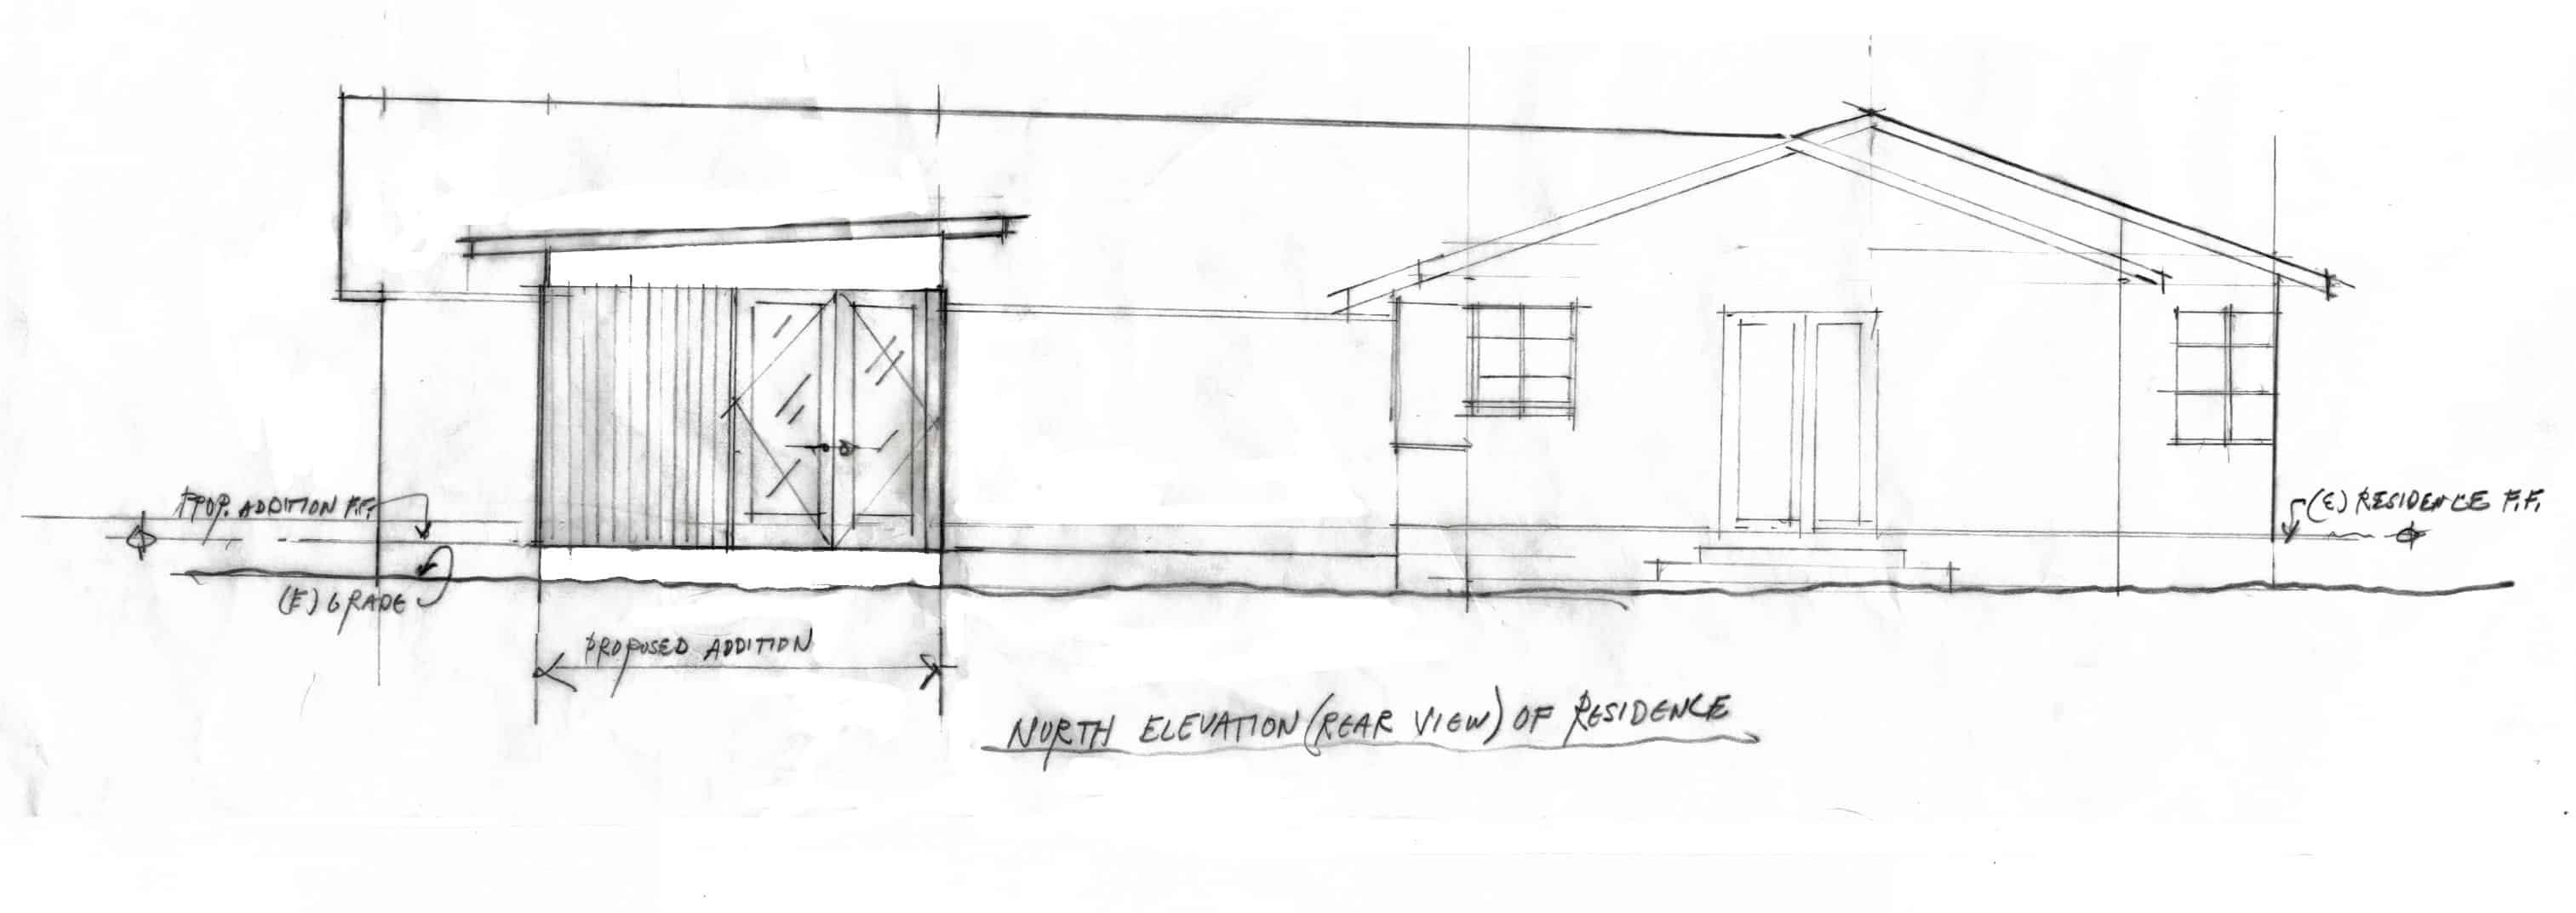 0609_CL20_Sketches_Elevation(7)